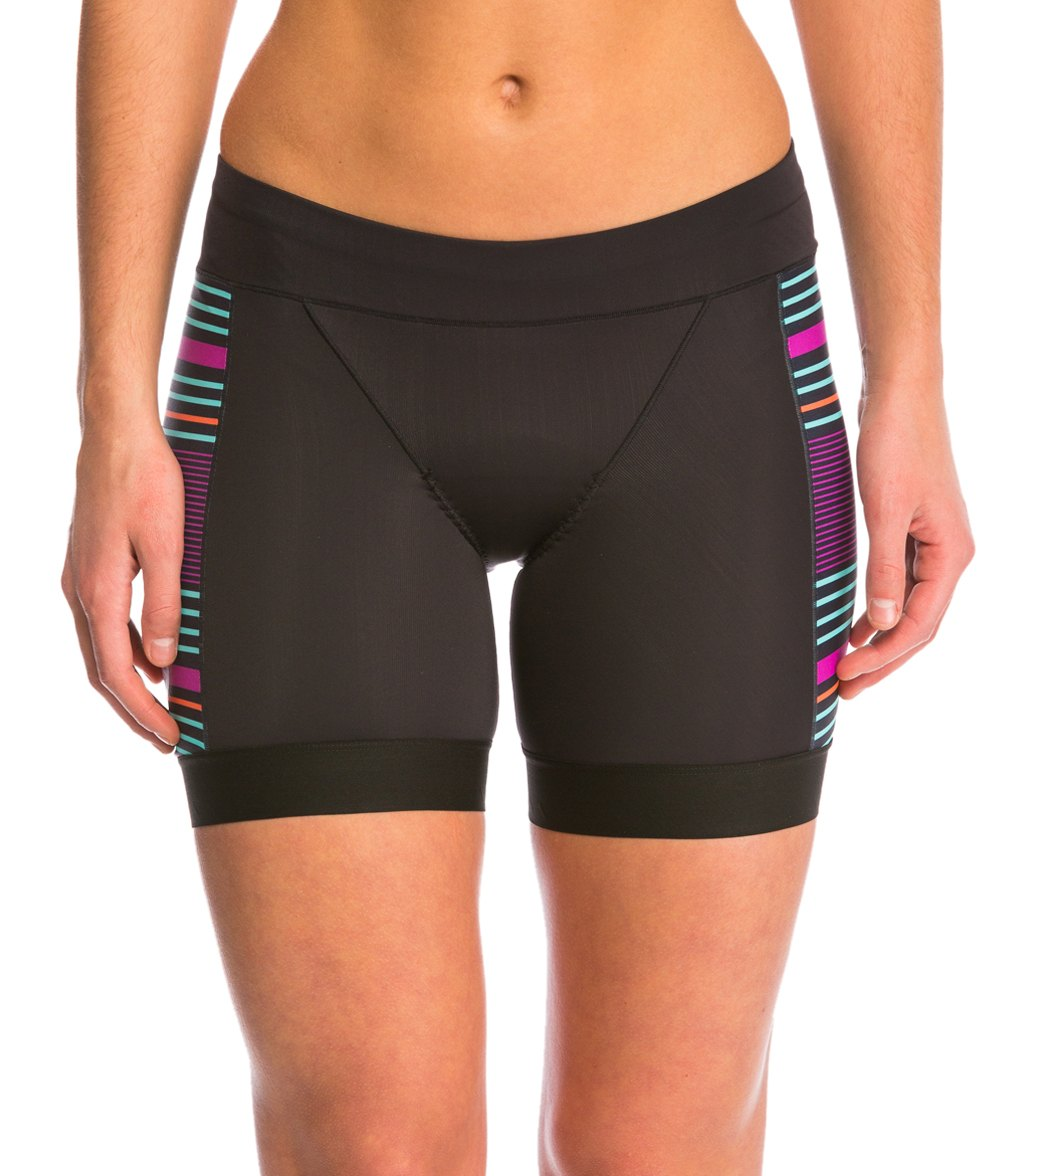 d736887d1060 Pearl Izumi Women s Elite Pursuit Tri Half Short at SwimOutlet.com - Free  Shipping